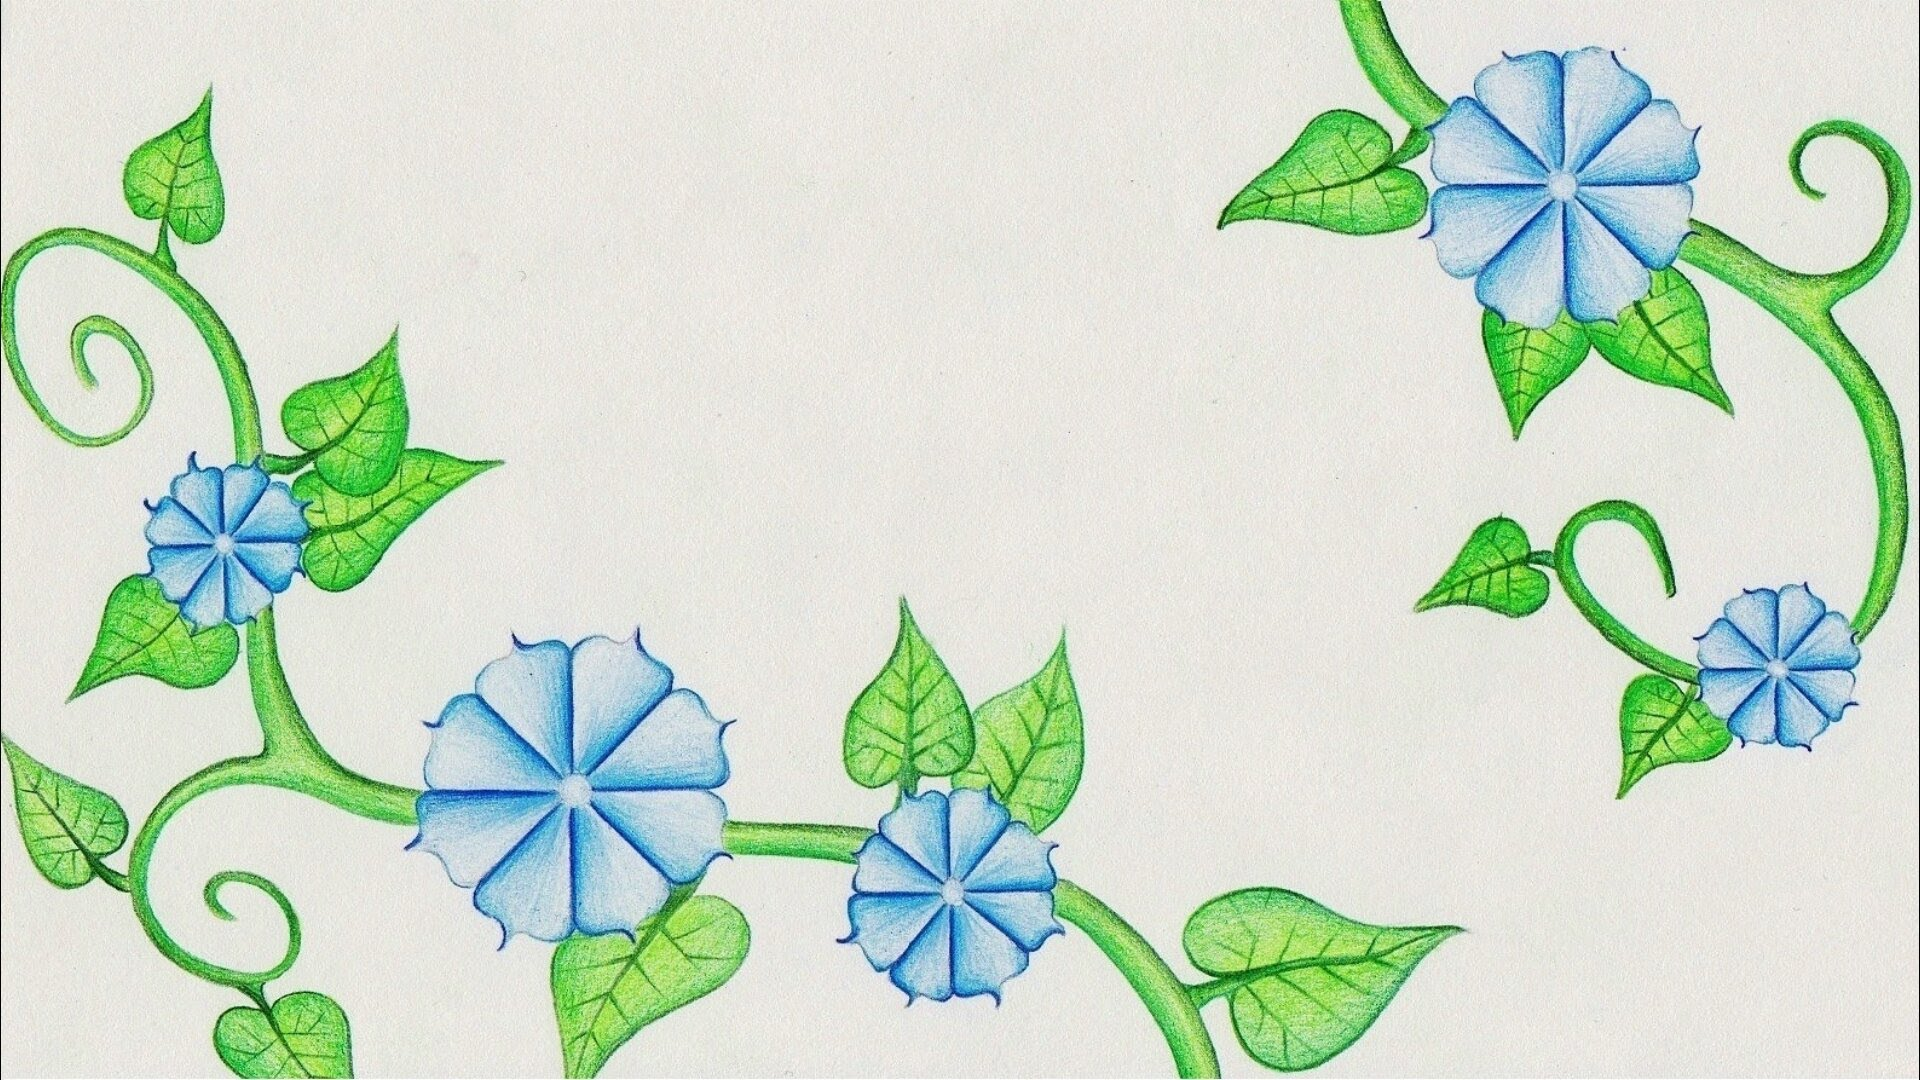 Vines And Flowers Drawing at GetDrawings.com | Free for personal use ...